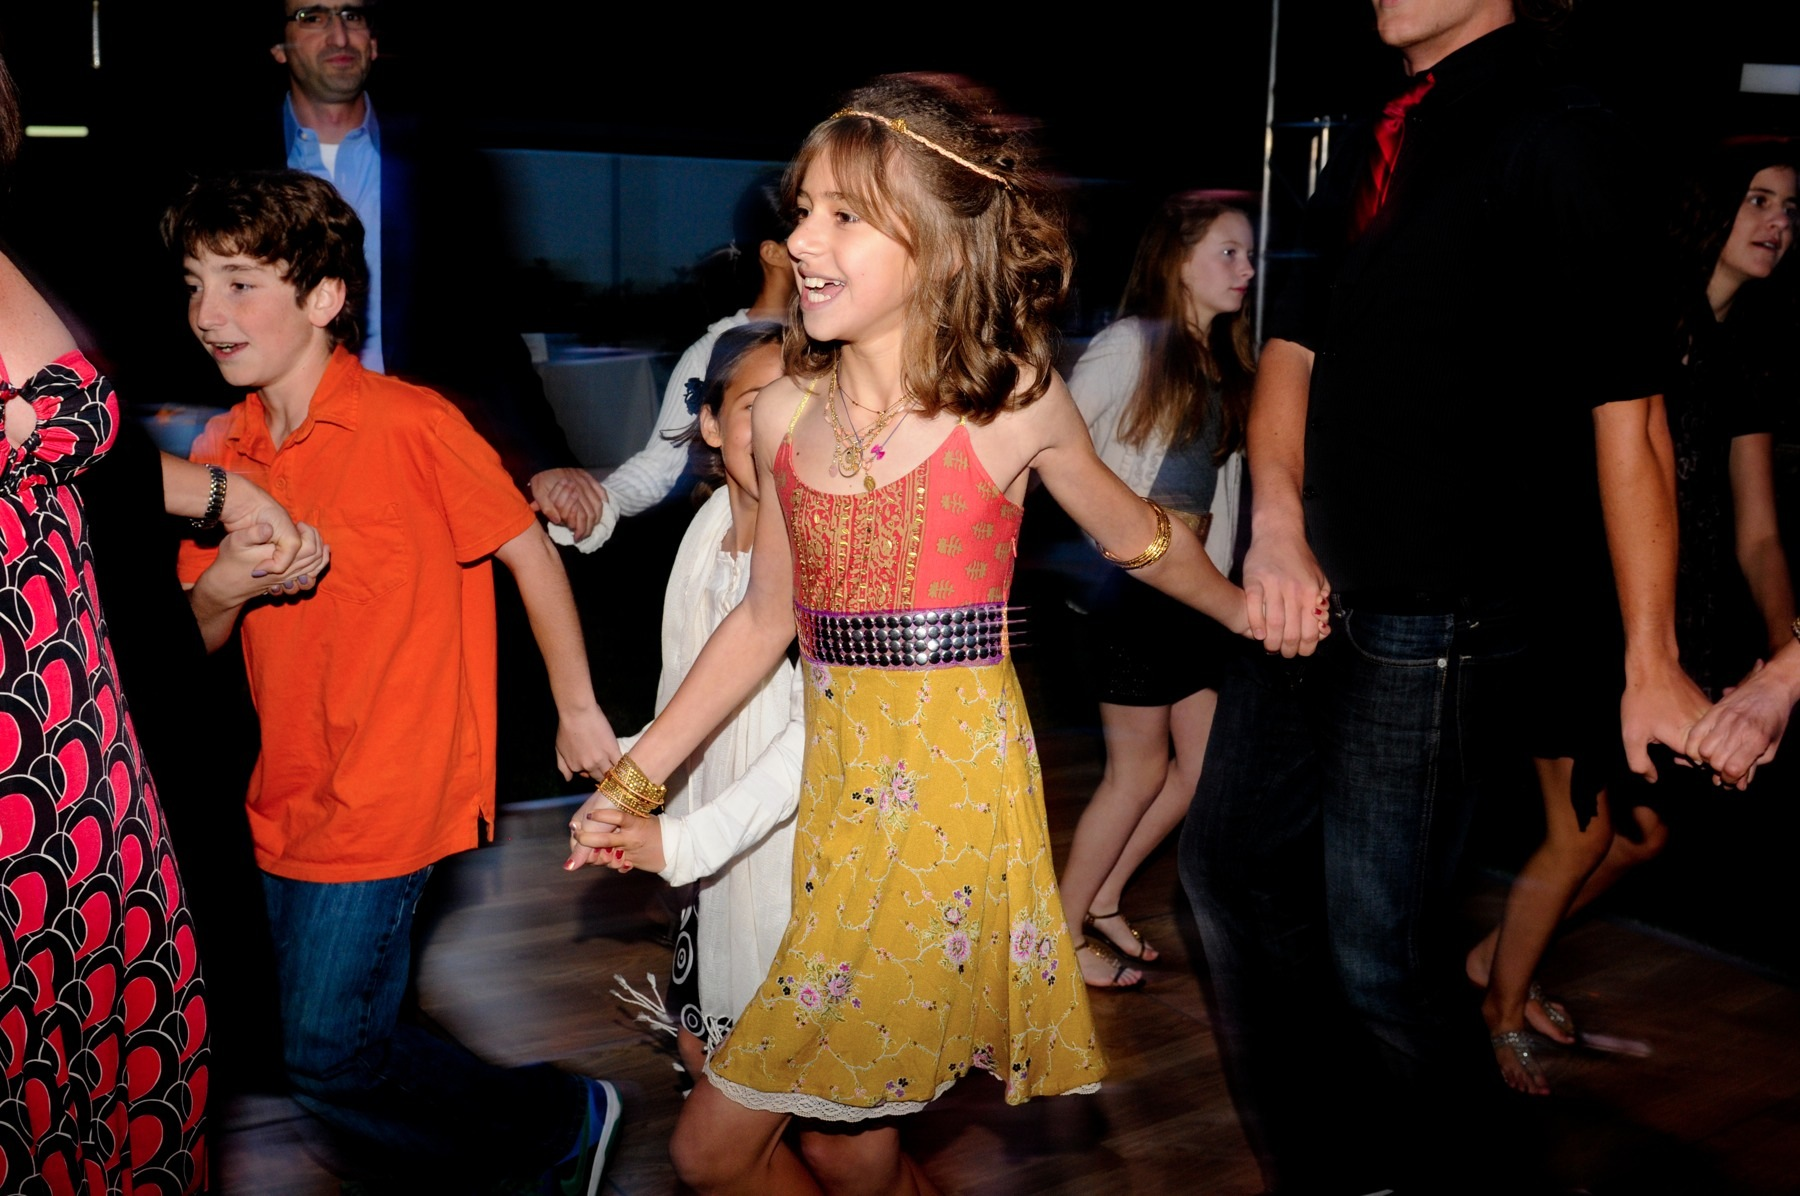 bat_mitzvah_bar_mitzvah_san_francisco_bay_area_photographer_party_photography_103